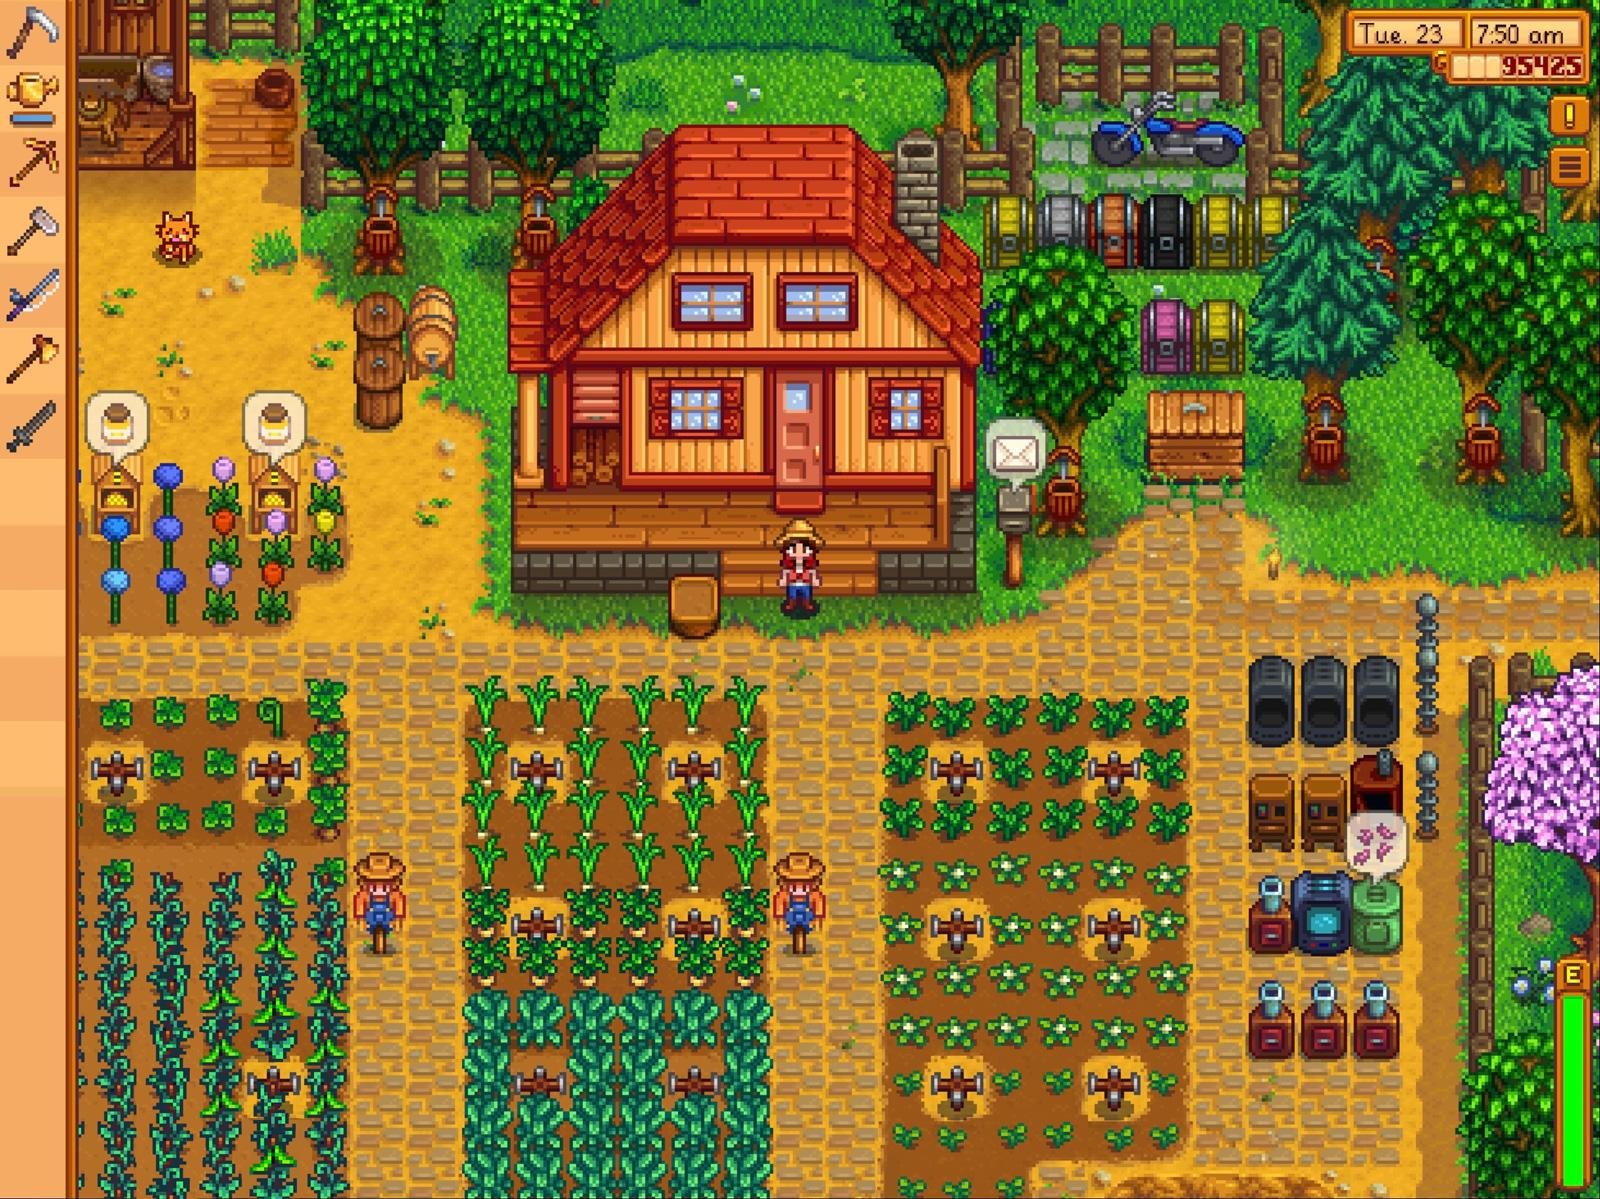 Delightful farming RPG 'Stardew Valley' is coming to iOS | Engadget